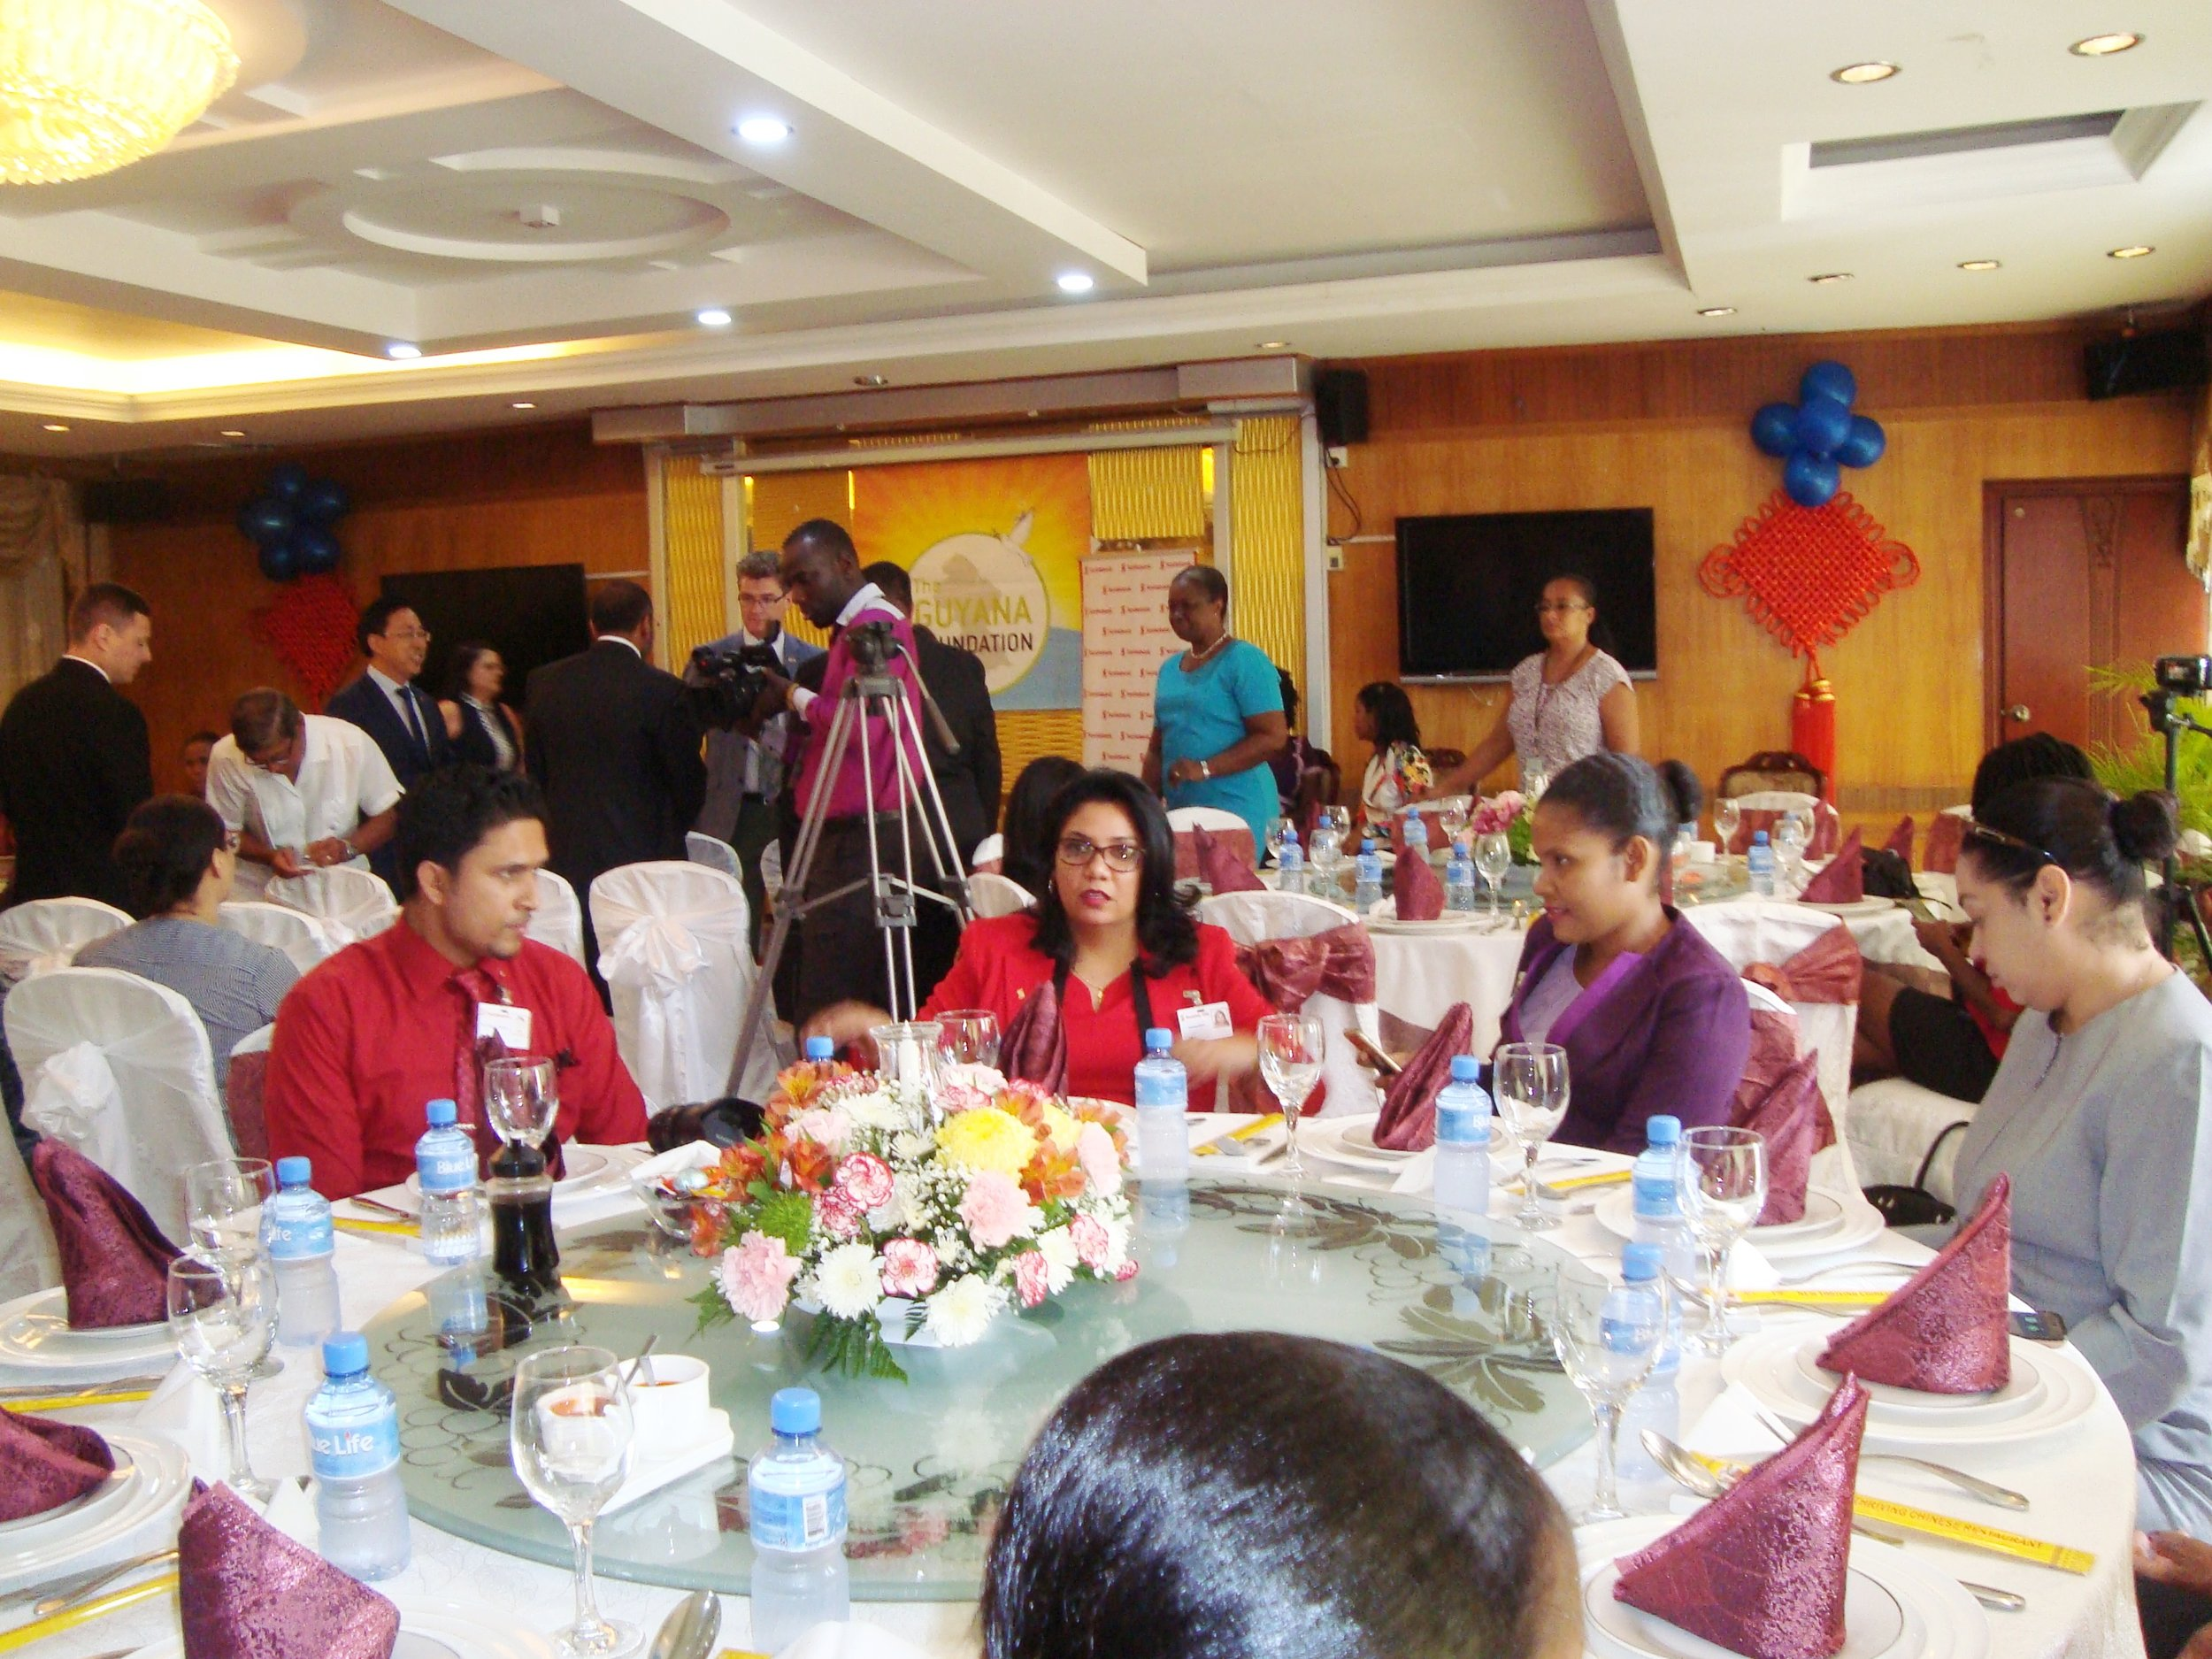 Press Conference/Luncheon: A section of the invitees to the event.